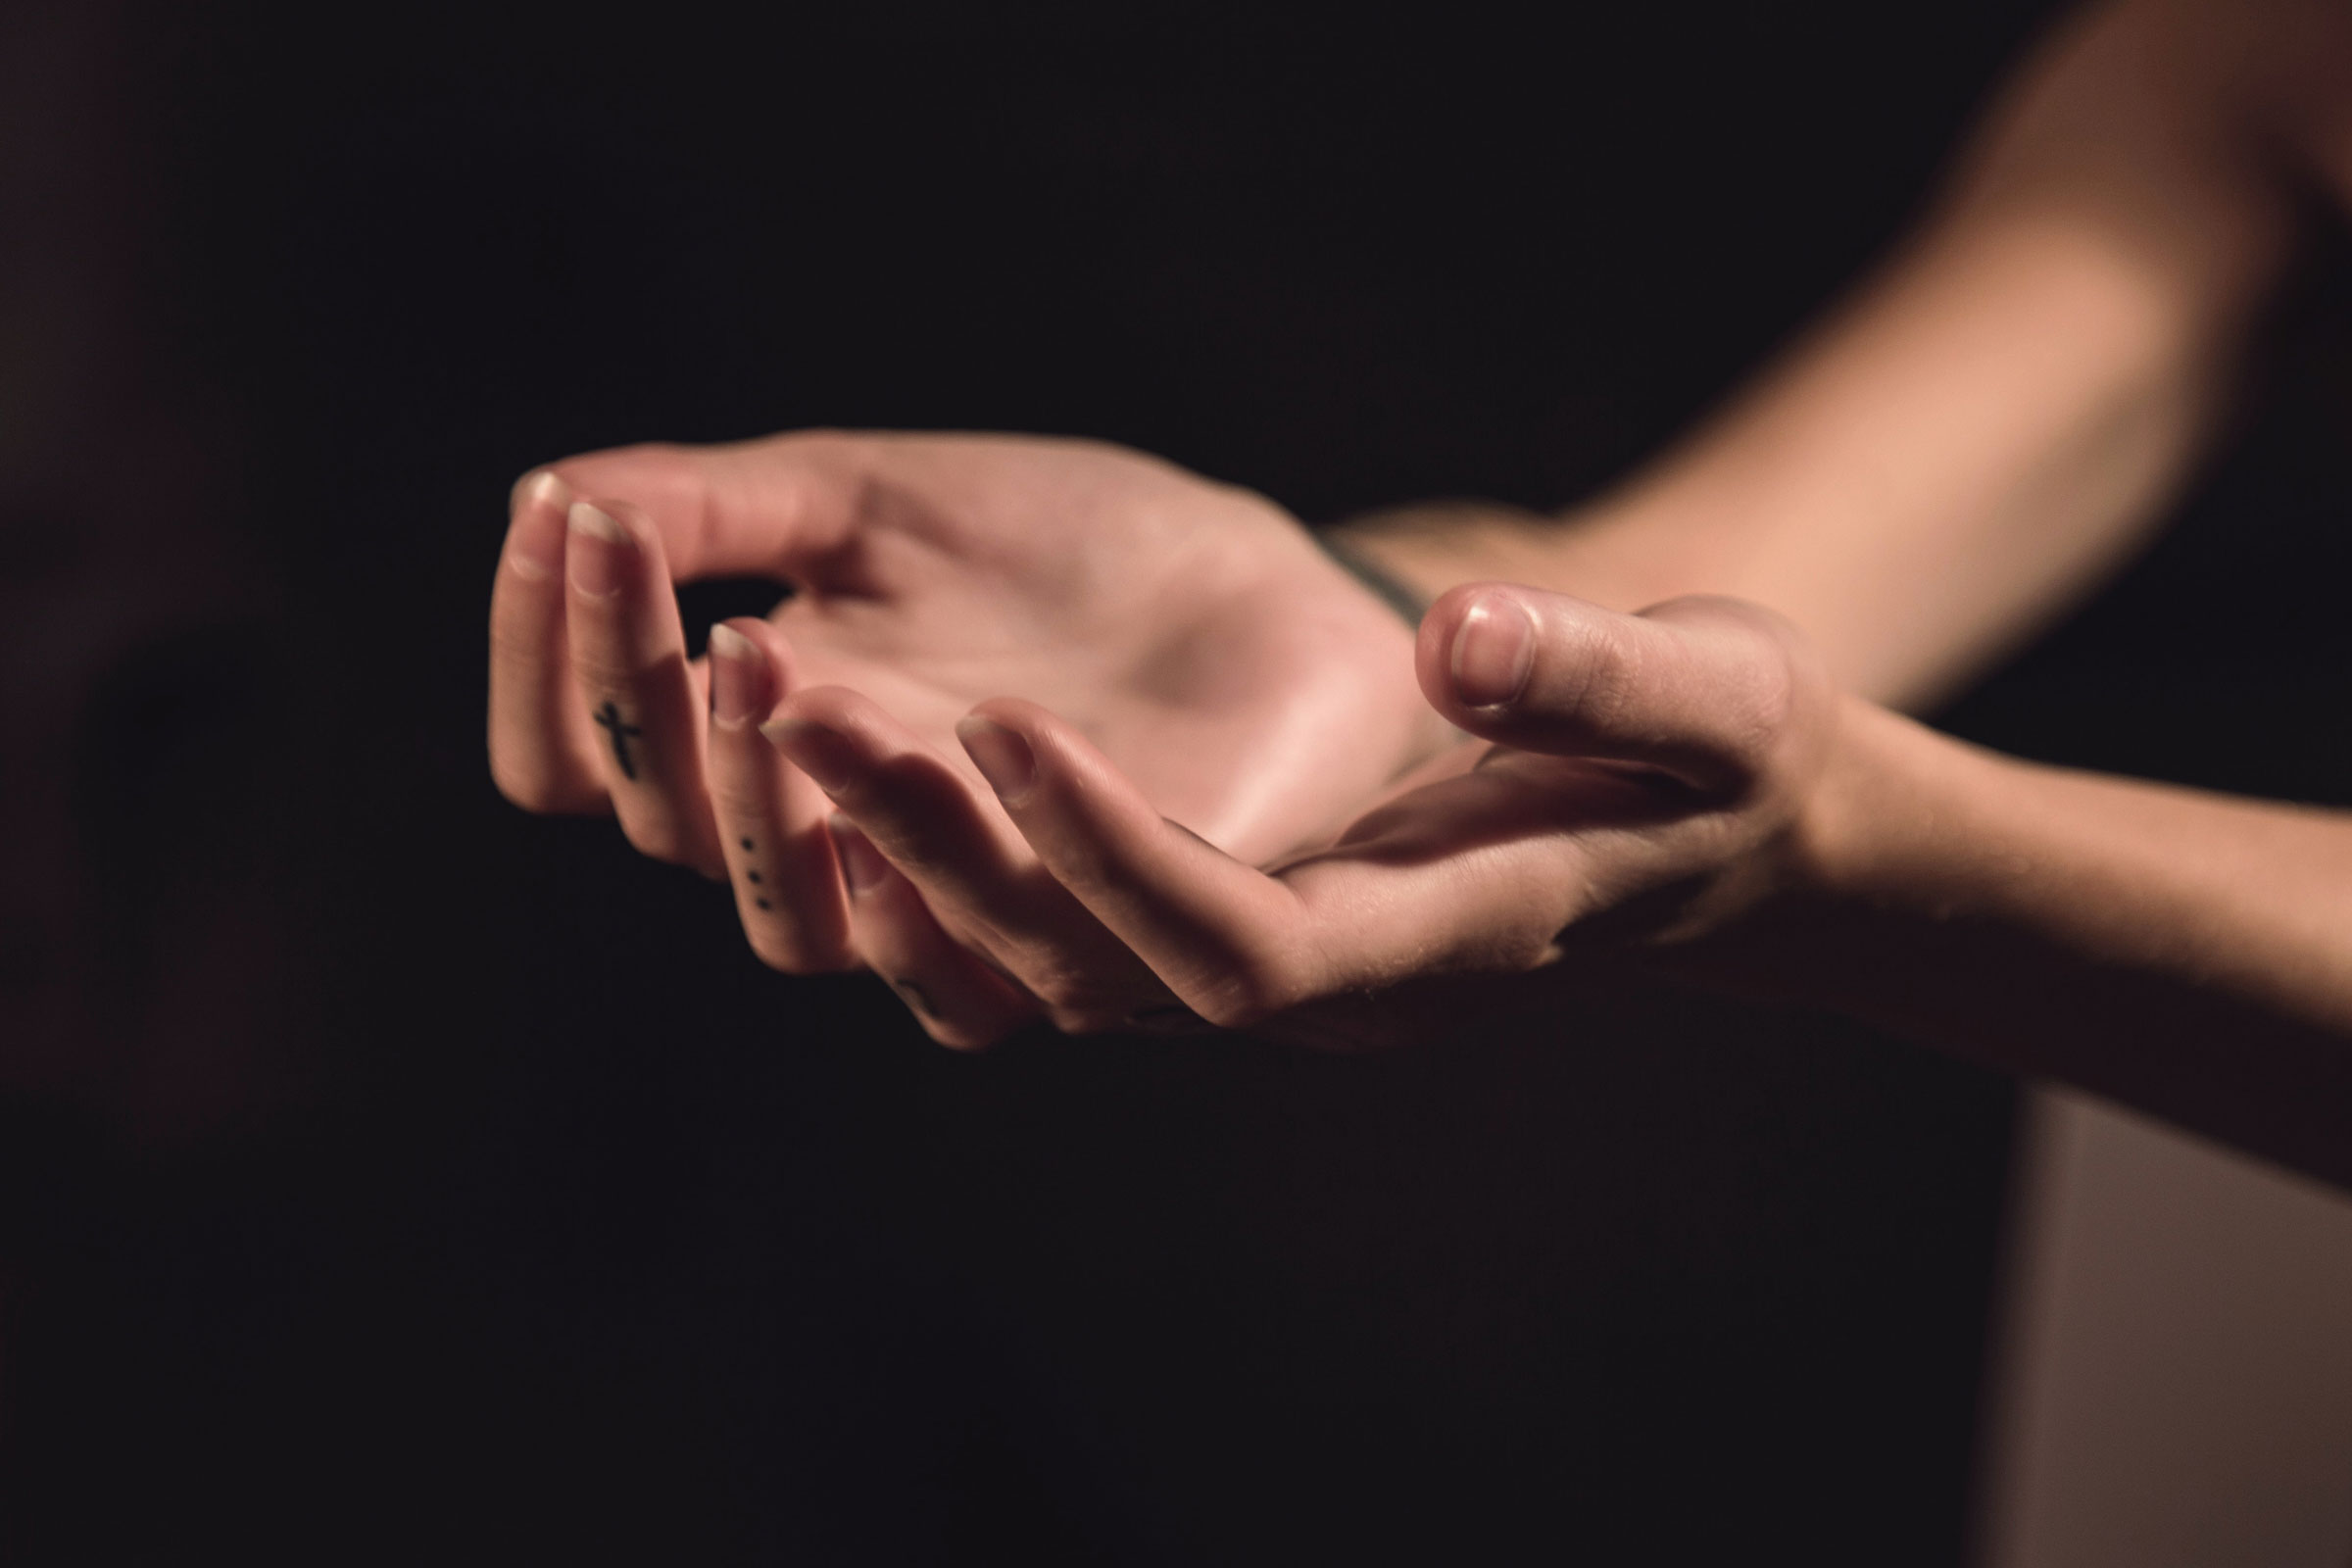 a white hand with a cross tattoo on her middle finger are posed against a black background